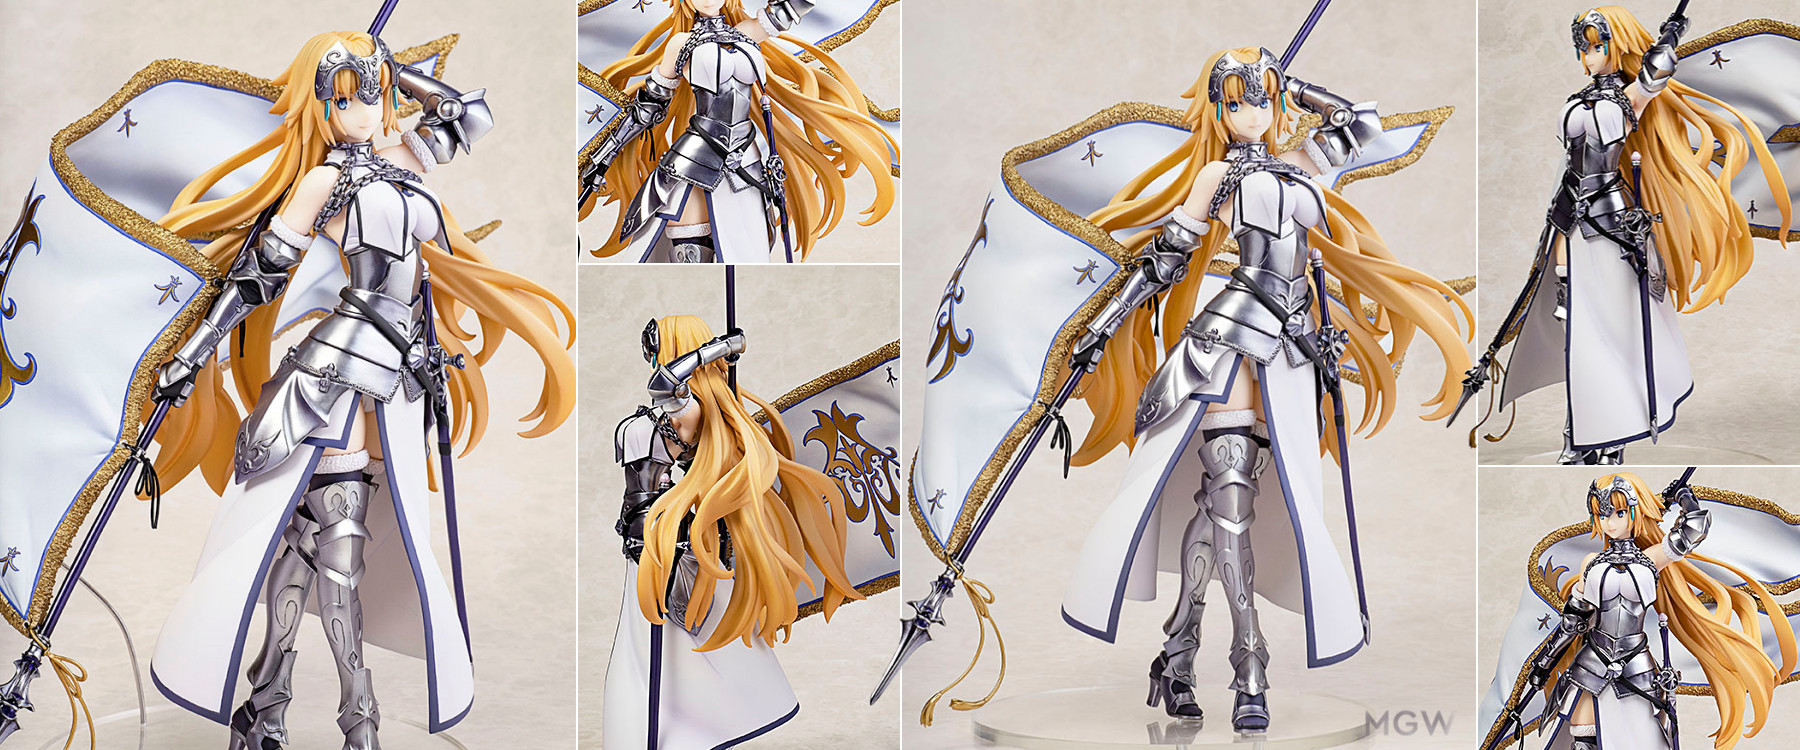 Ruler Jeanne dArc by FLARE from Fate Grand Order